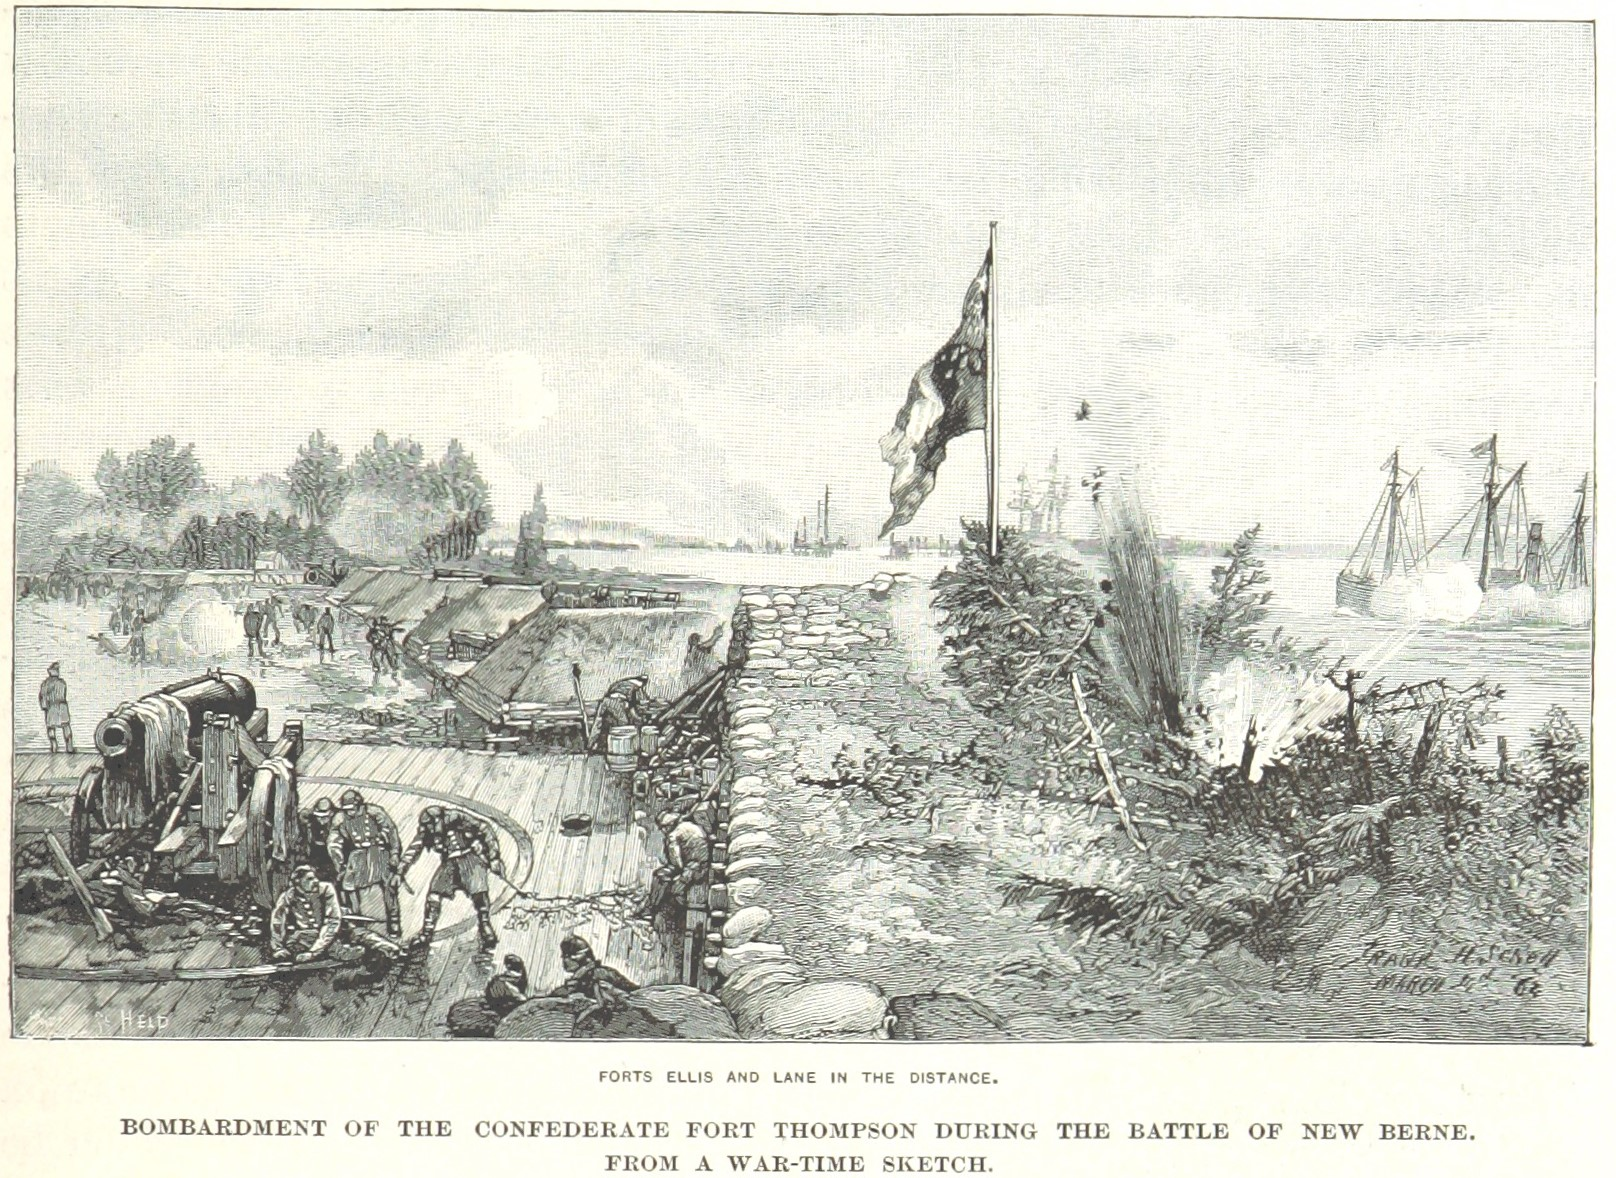 Battle of New Bern Image Three